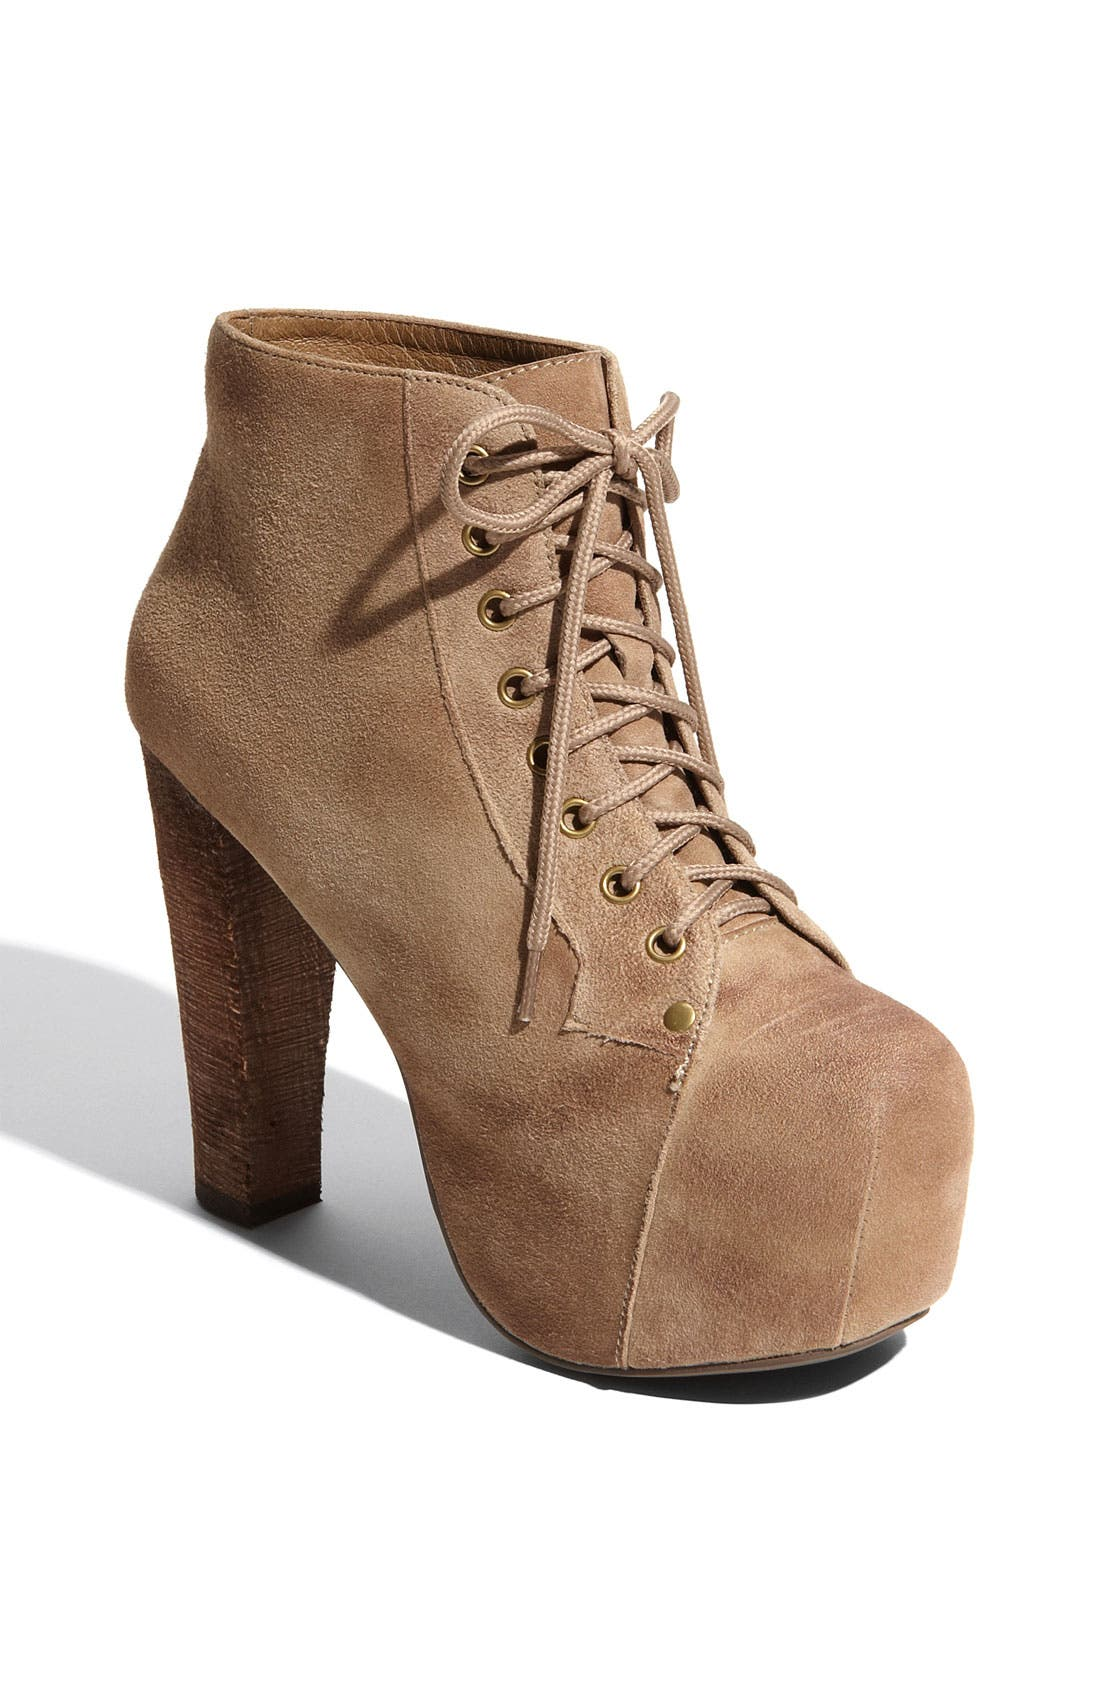 Alternate Image 1 Selected - Jeffrey Campbell 'Lita' Suede Bootie (Women)